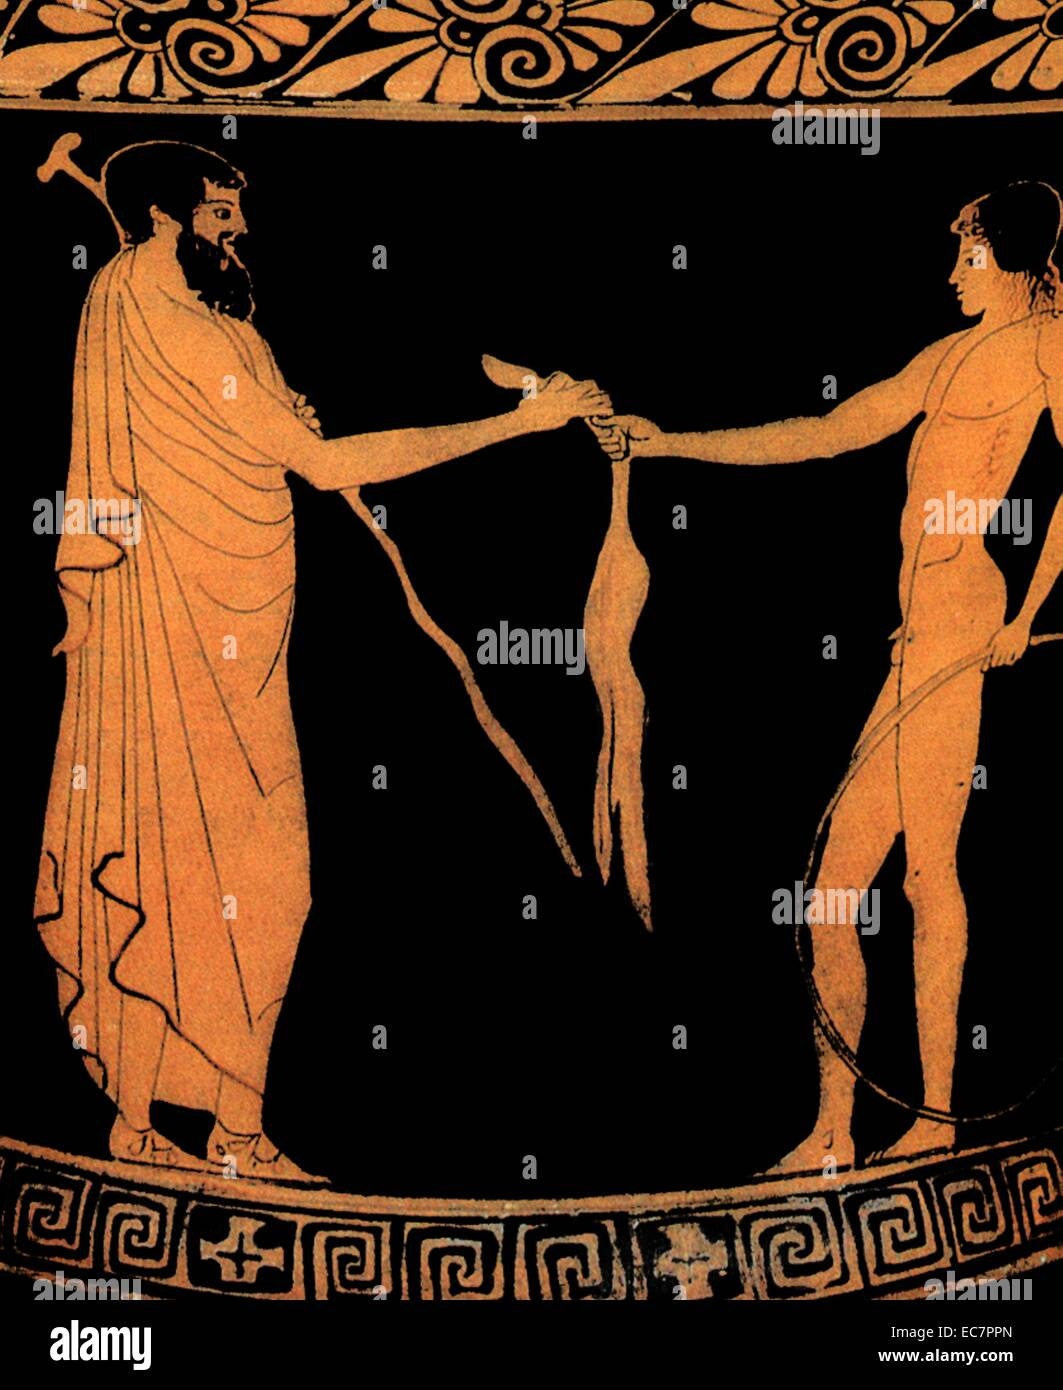 Ancient Greek Calyx krater  circa 460 BC. Depicts a man giving a present to a youth - Stock Image